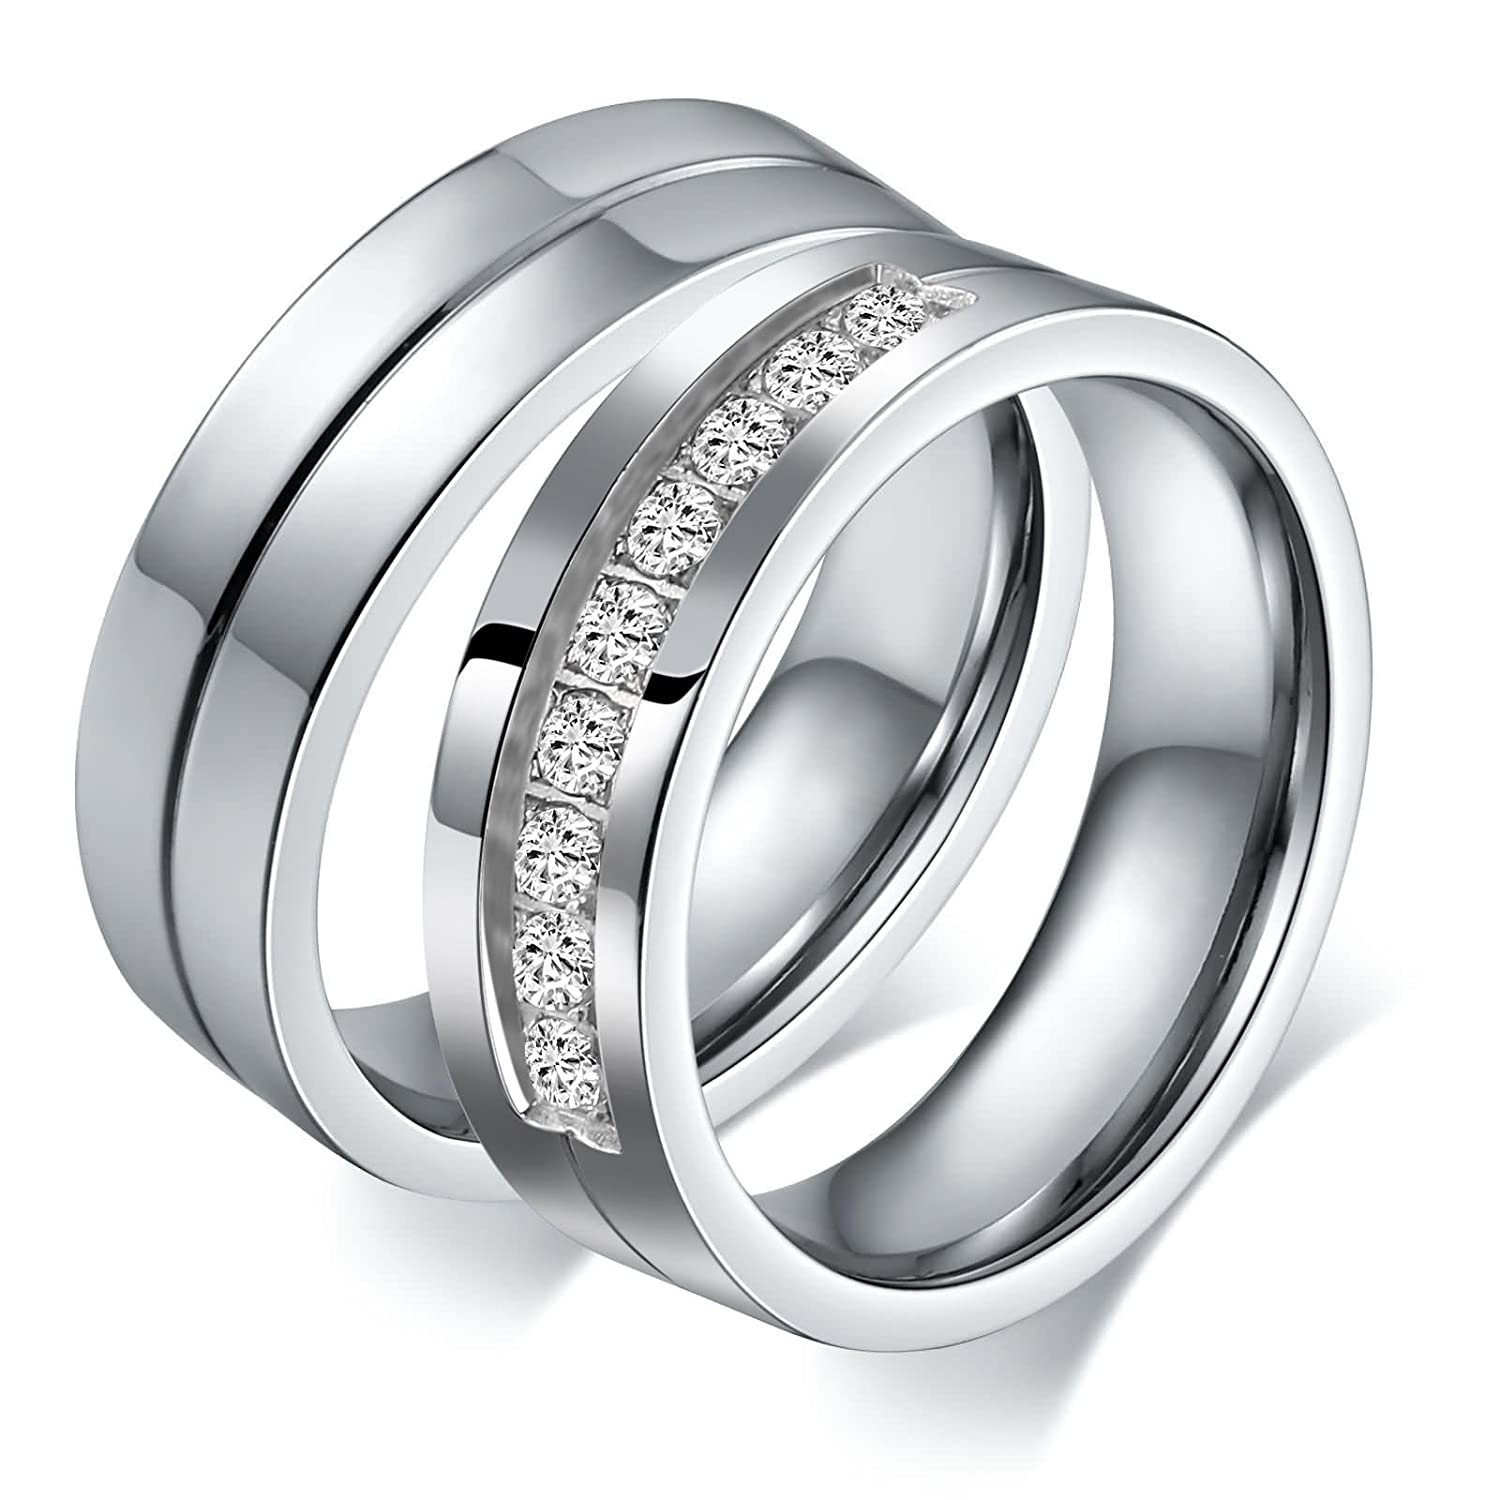 471d24a44c084 Mens Couples Rings images